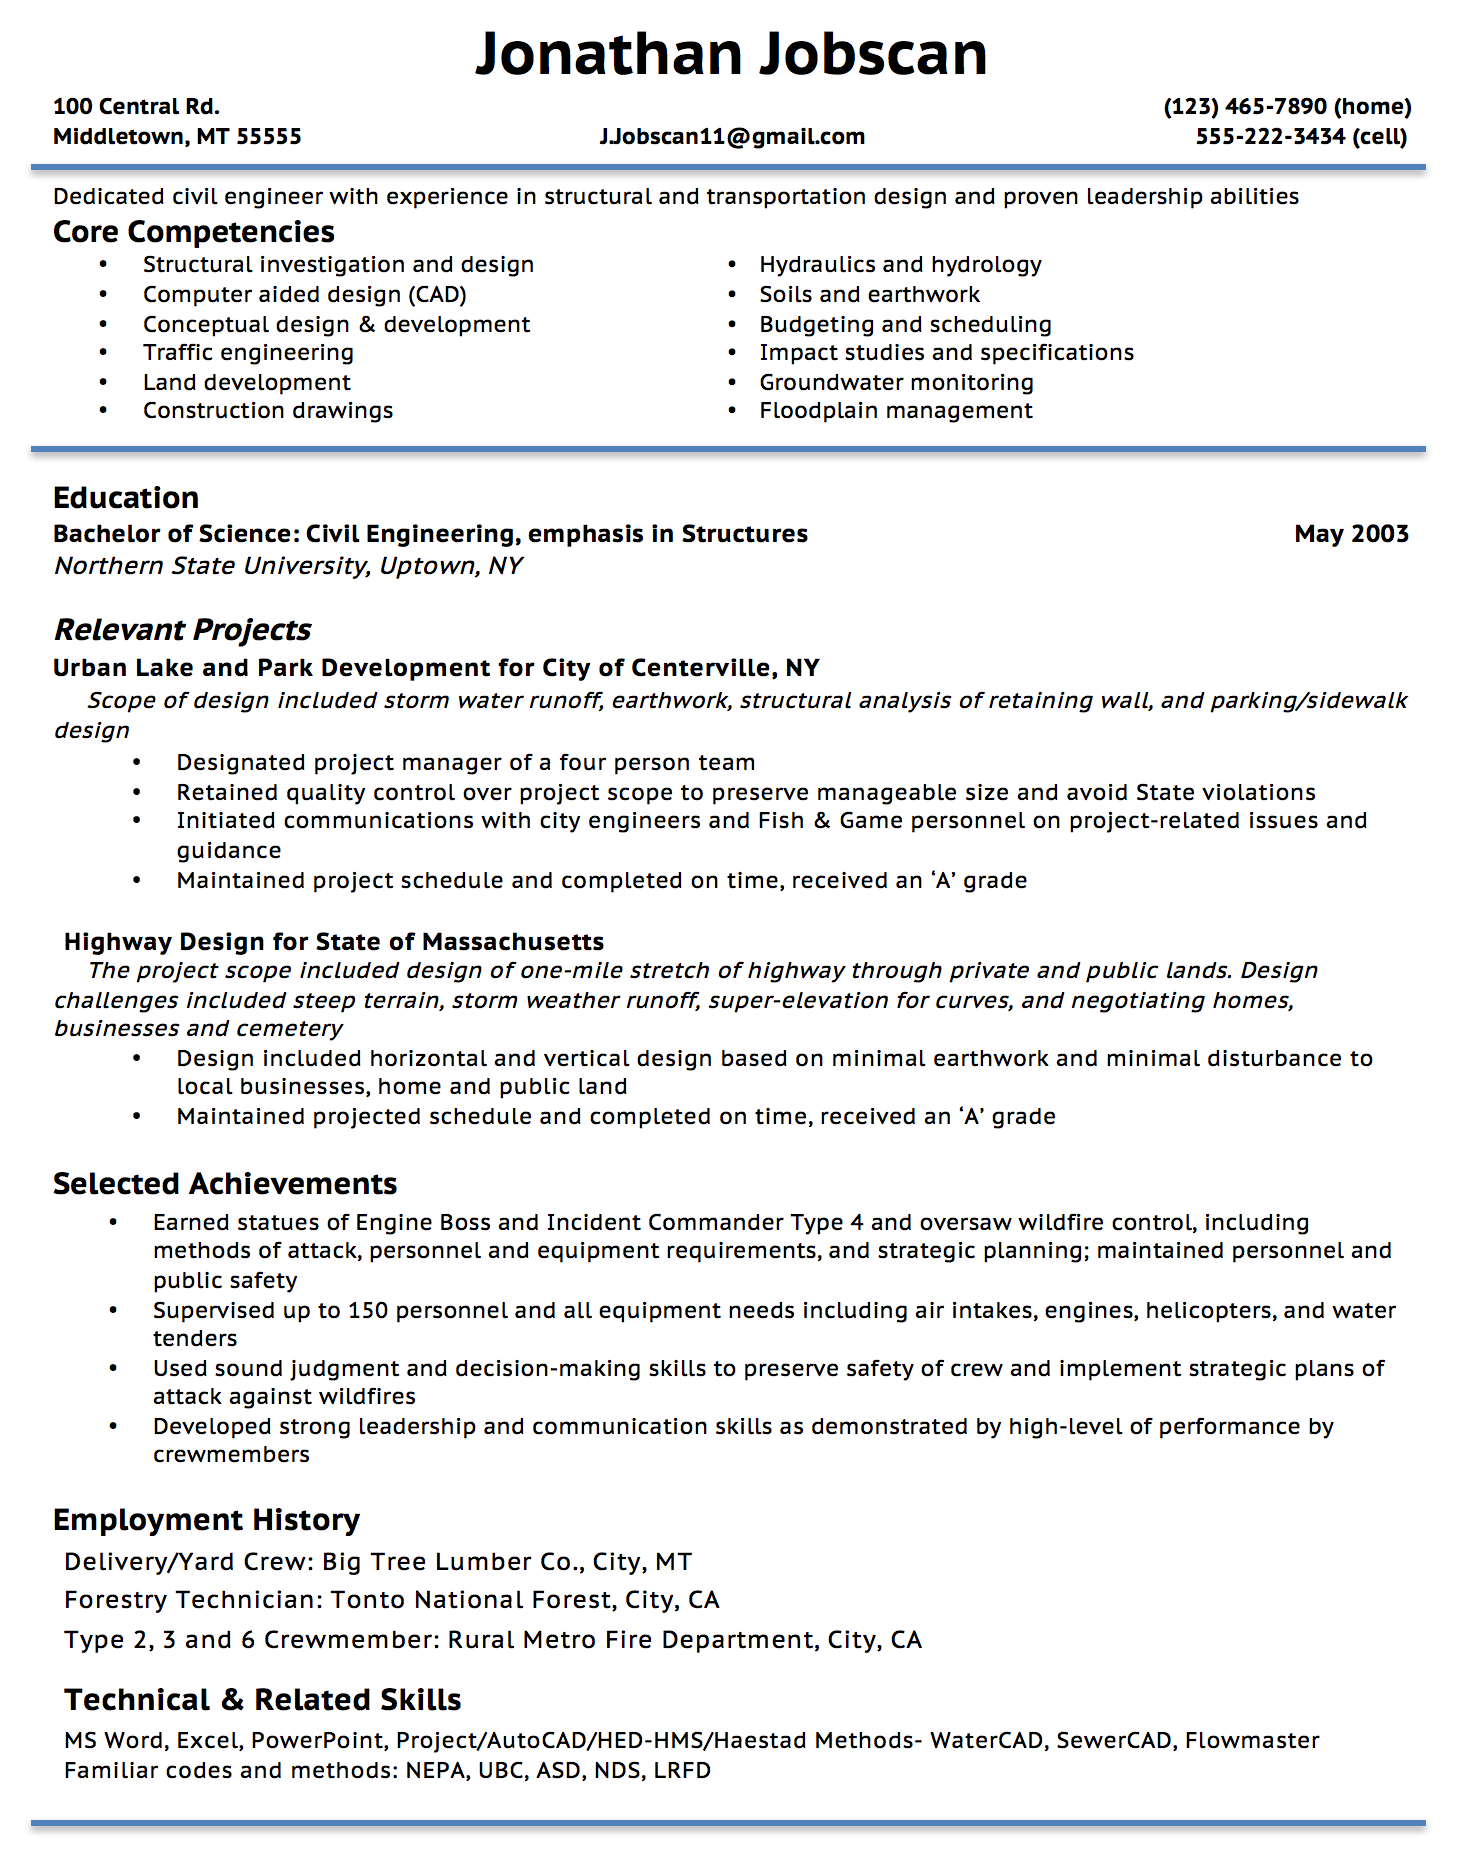 Opposenewapstandardsus  Winsome Resume Writing Guide  Jobscan With Remarkable Example Of A Functional Resume Format With Comely What Does Designation Mean On A Resume Also Education Resumes In Addition Dental Resume And Pharmacy Technician Resume Sample As Well As Management Consulting Resume Additionally Eye Catching Resume From Jobscanco With Opposenewapstandardsus  Remarkable Resume Writing Guide  Jobscan With Comely Example Of A Functional Resume Format And Winsome What Does Designation Mean On A Resume Also Education Resumes In Addition Dental Resume From Jobscanco